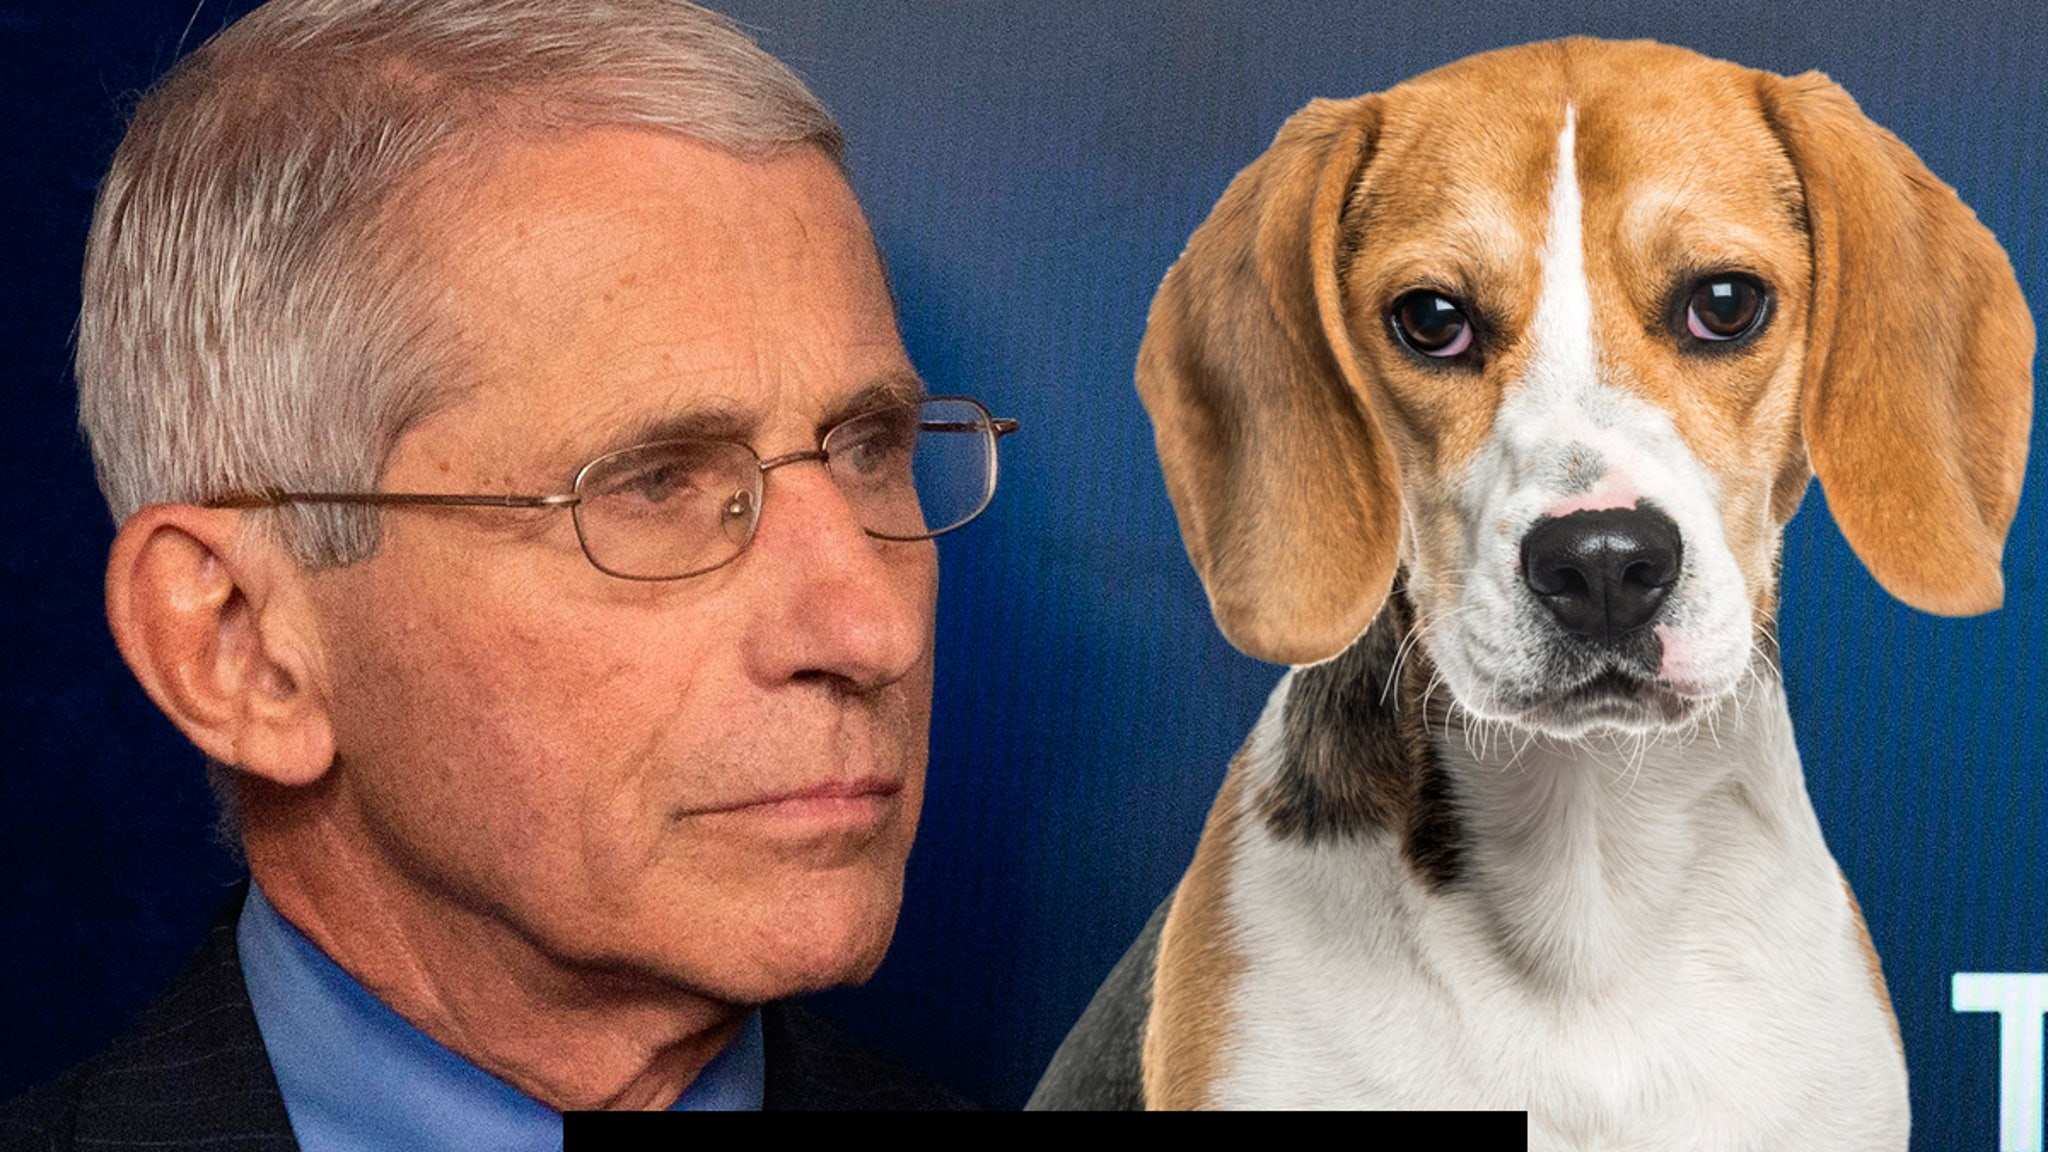 Beagle Org Demands Dr. Fauci Stop Supporting Animal Testing